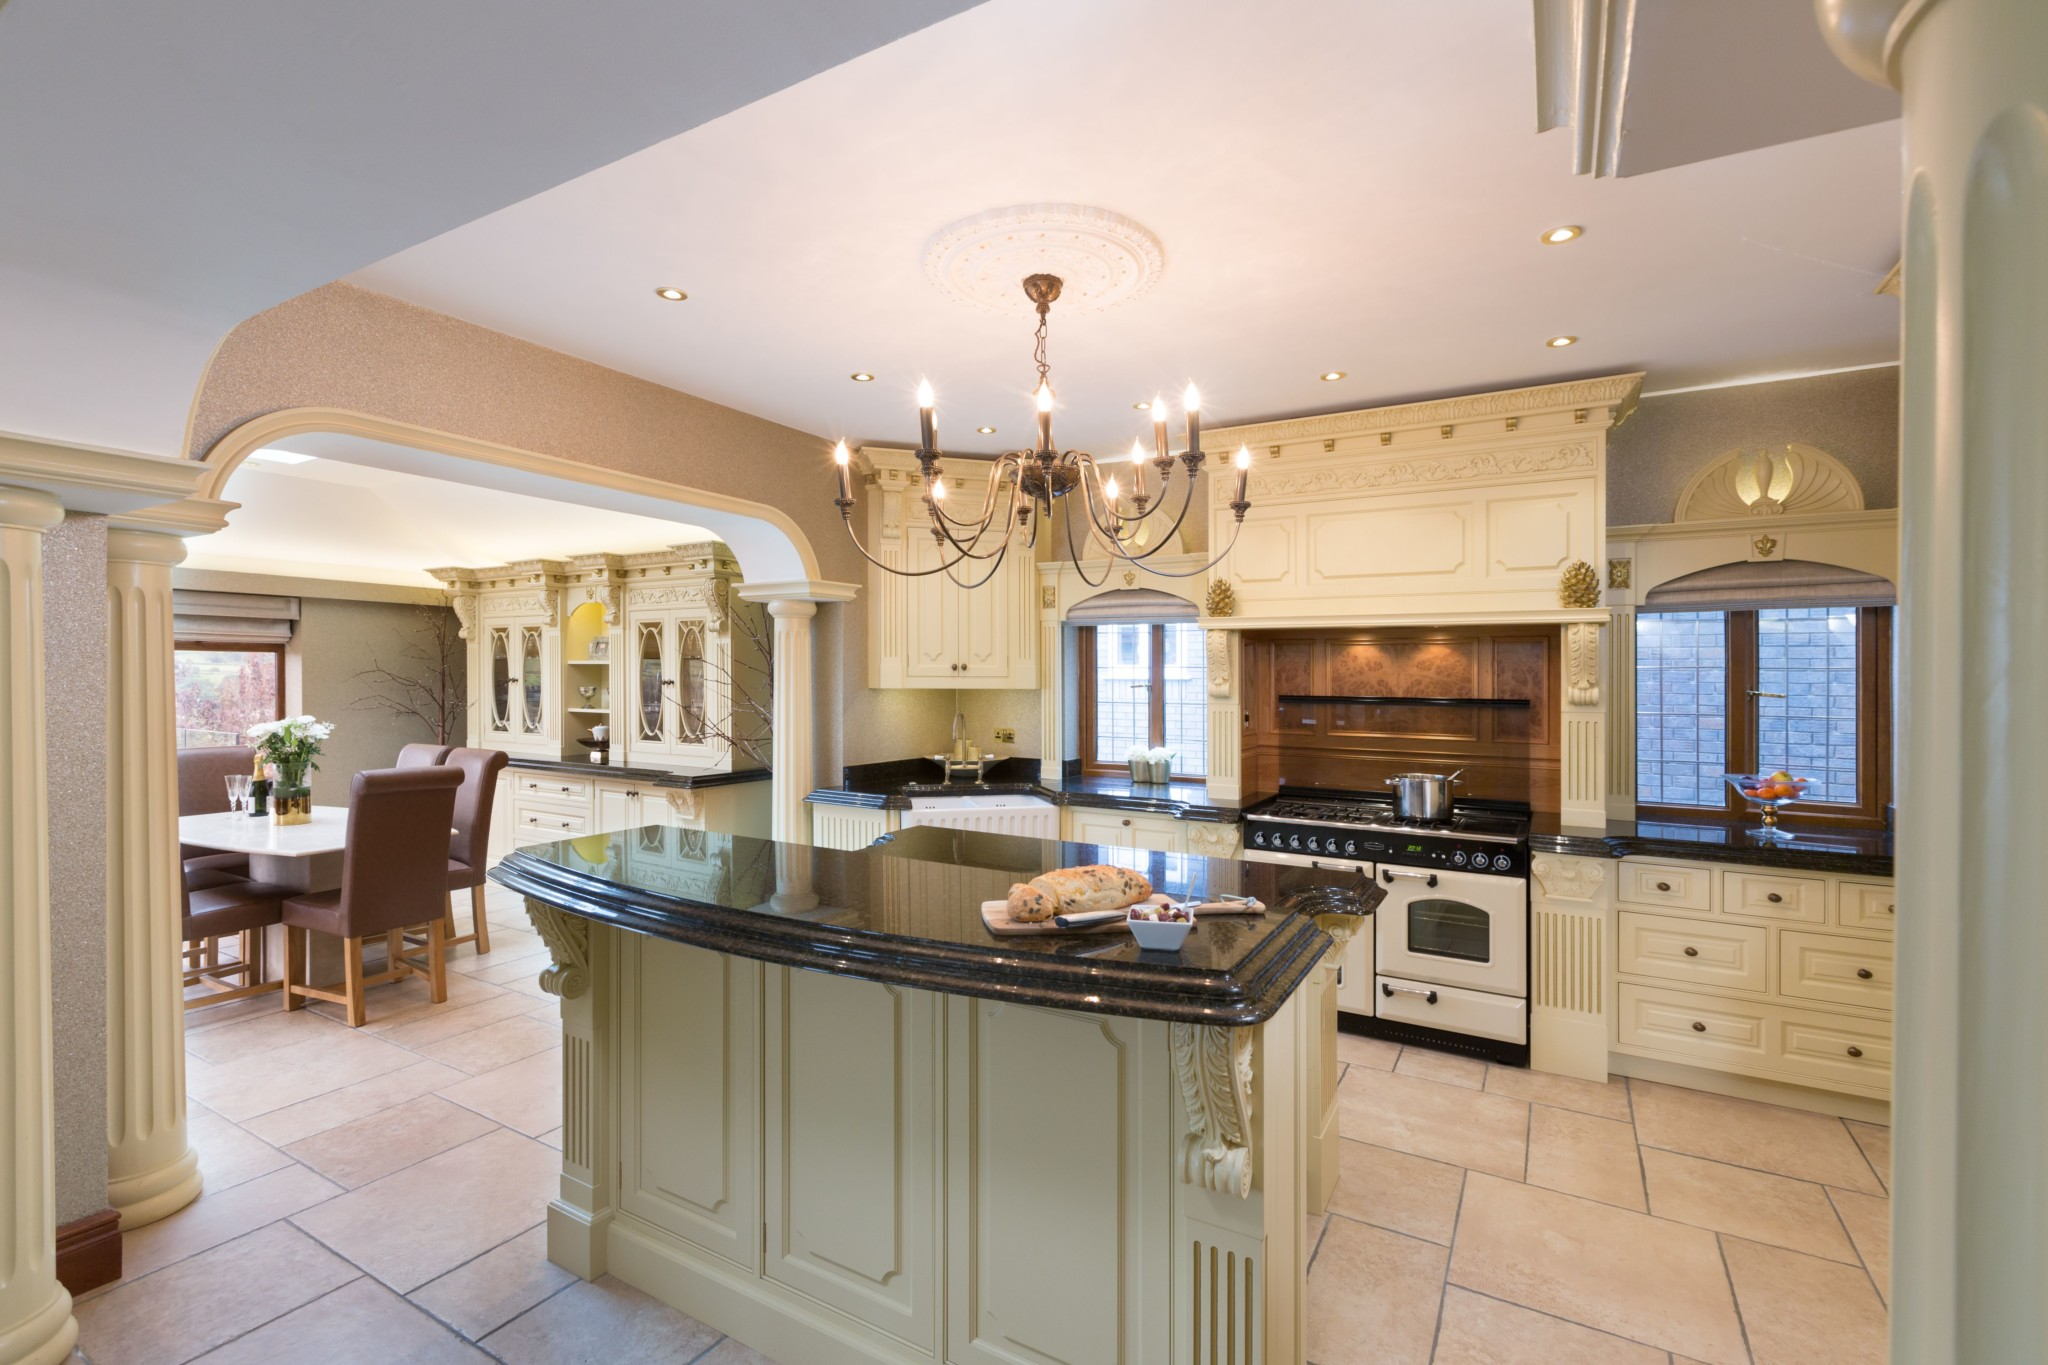 Classical Kitchens Classical Kitchens Inspirational Interior Design